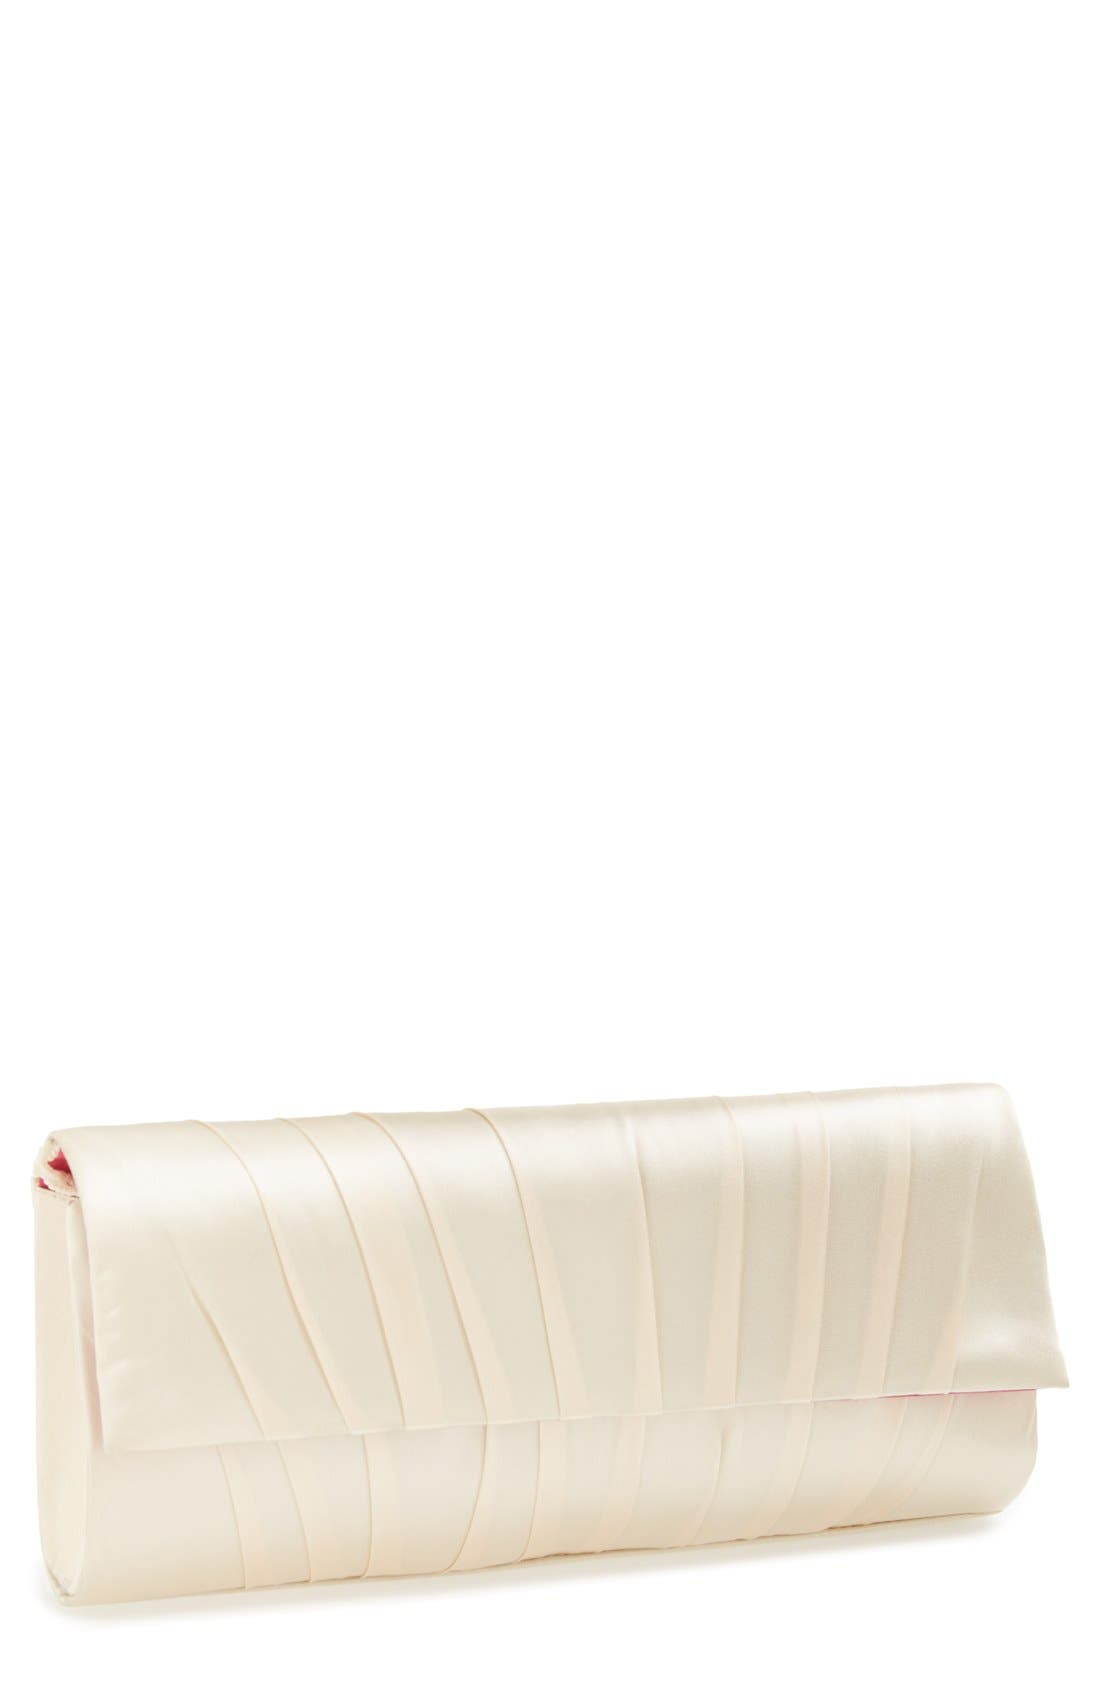 'Livana' Clutch,                         Main,                         color, Champagne